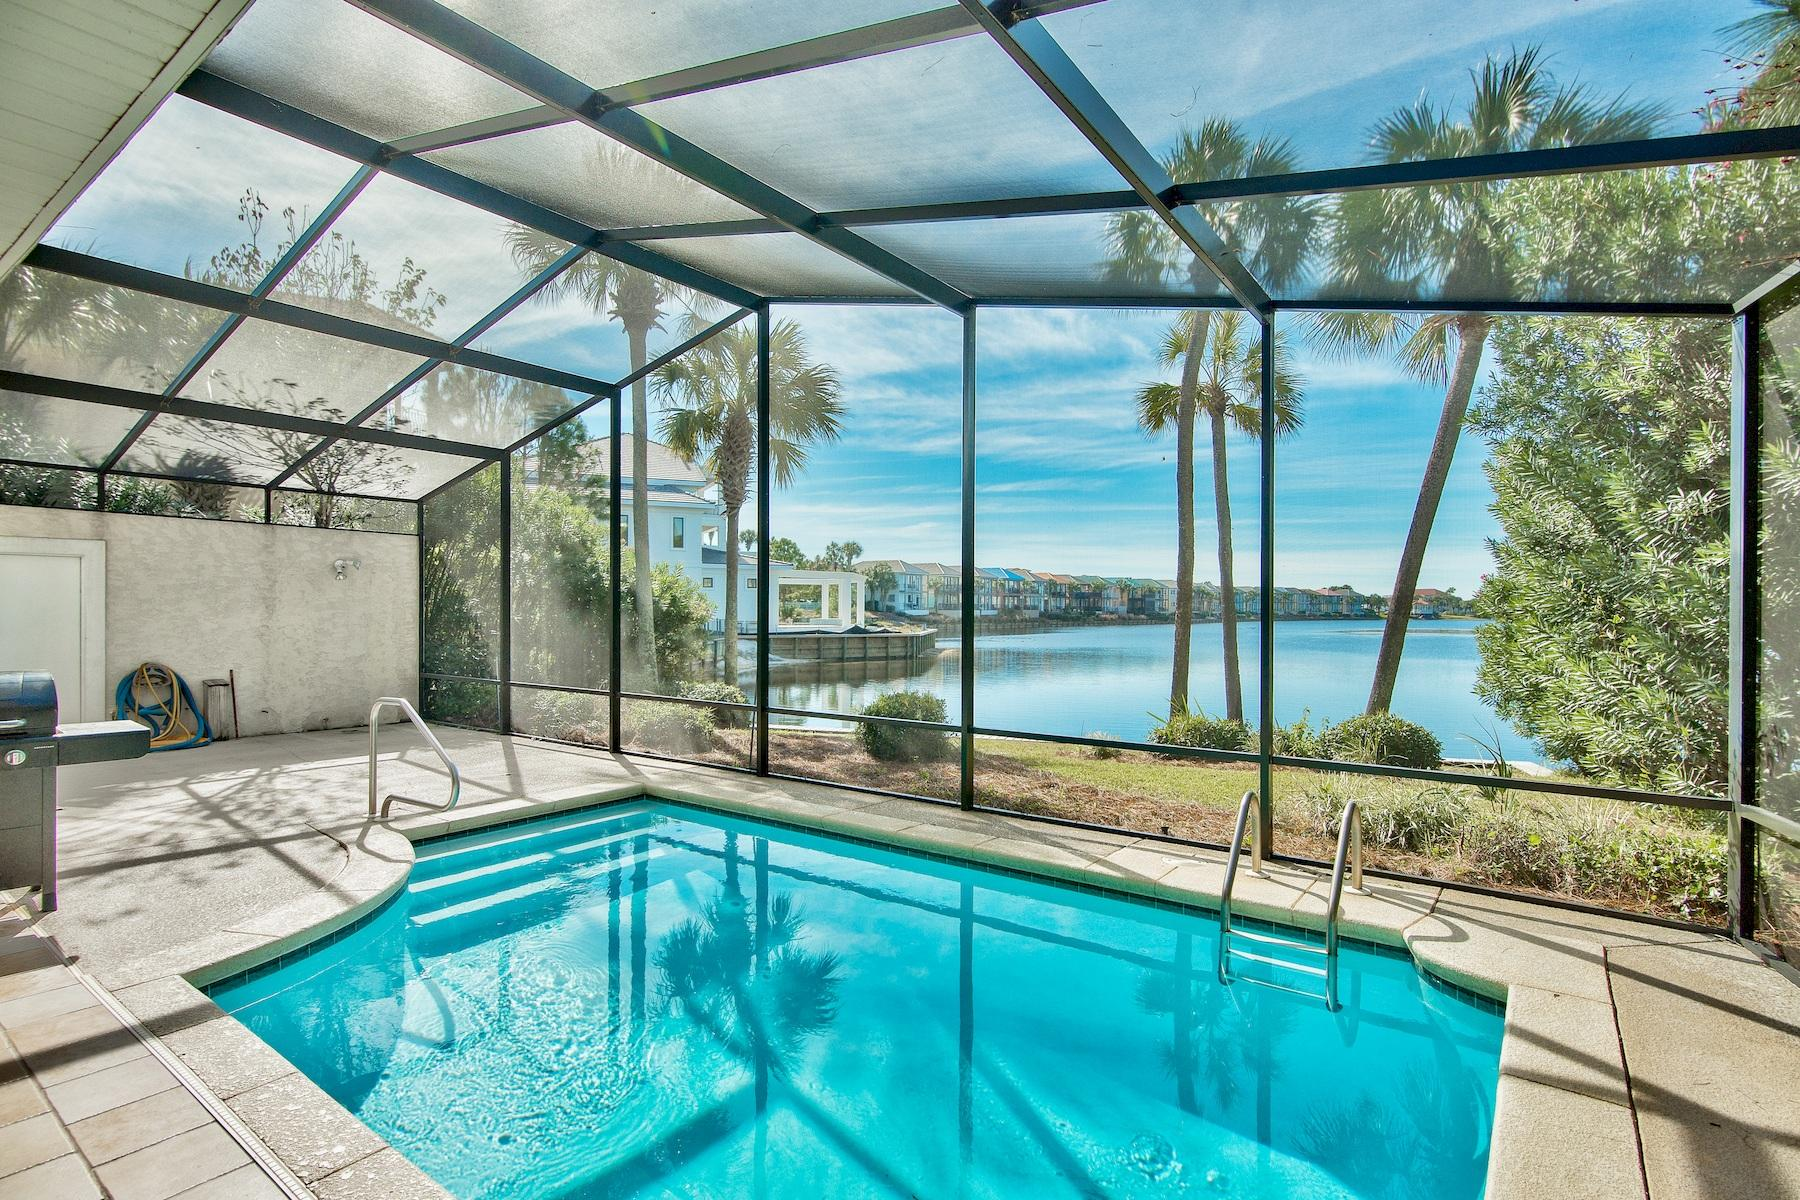 72 Tranquility Lane, Destin, Florida